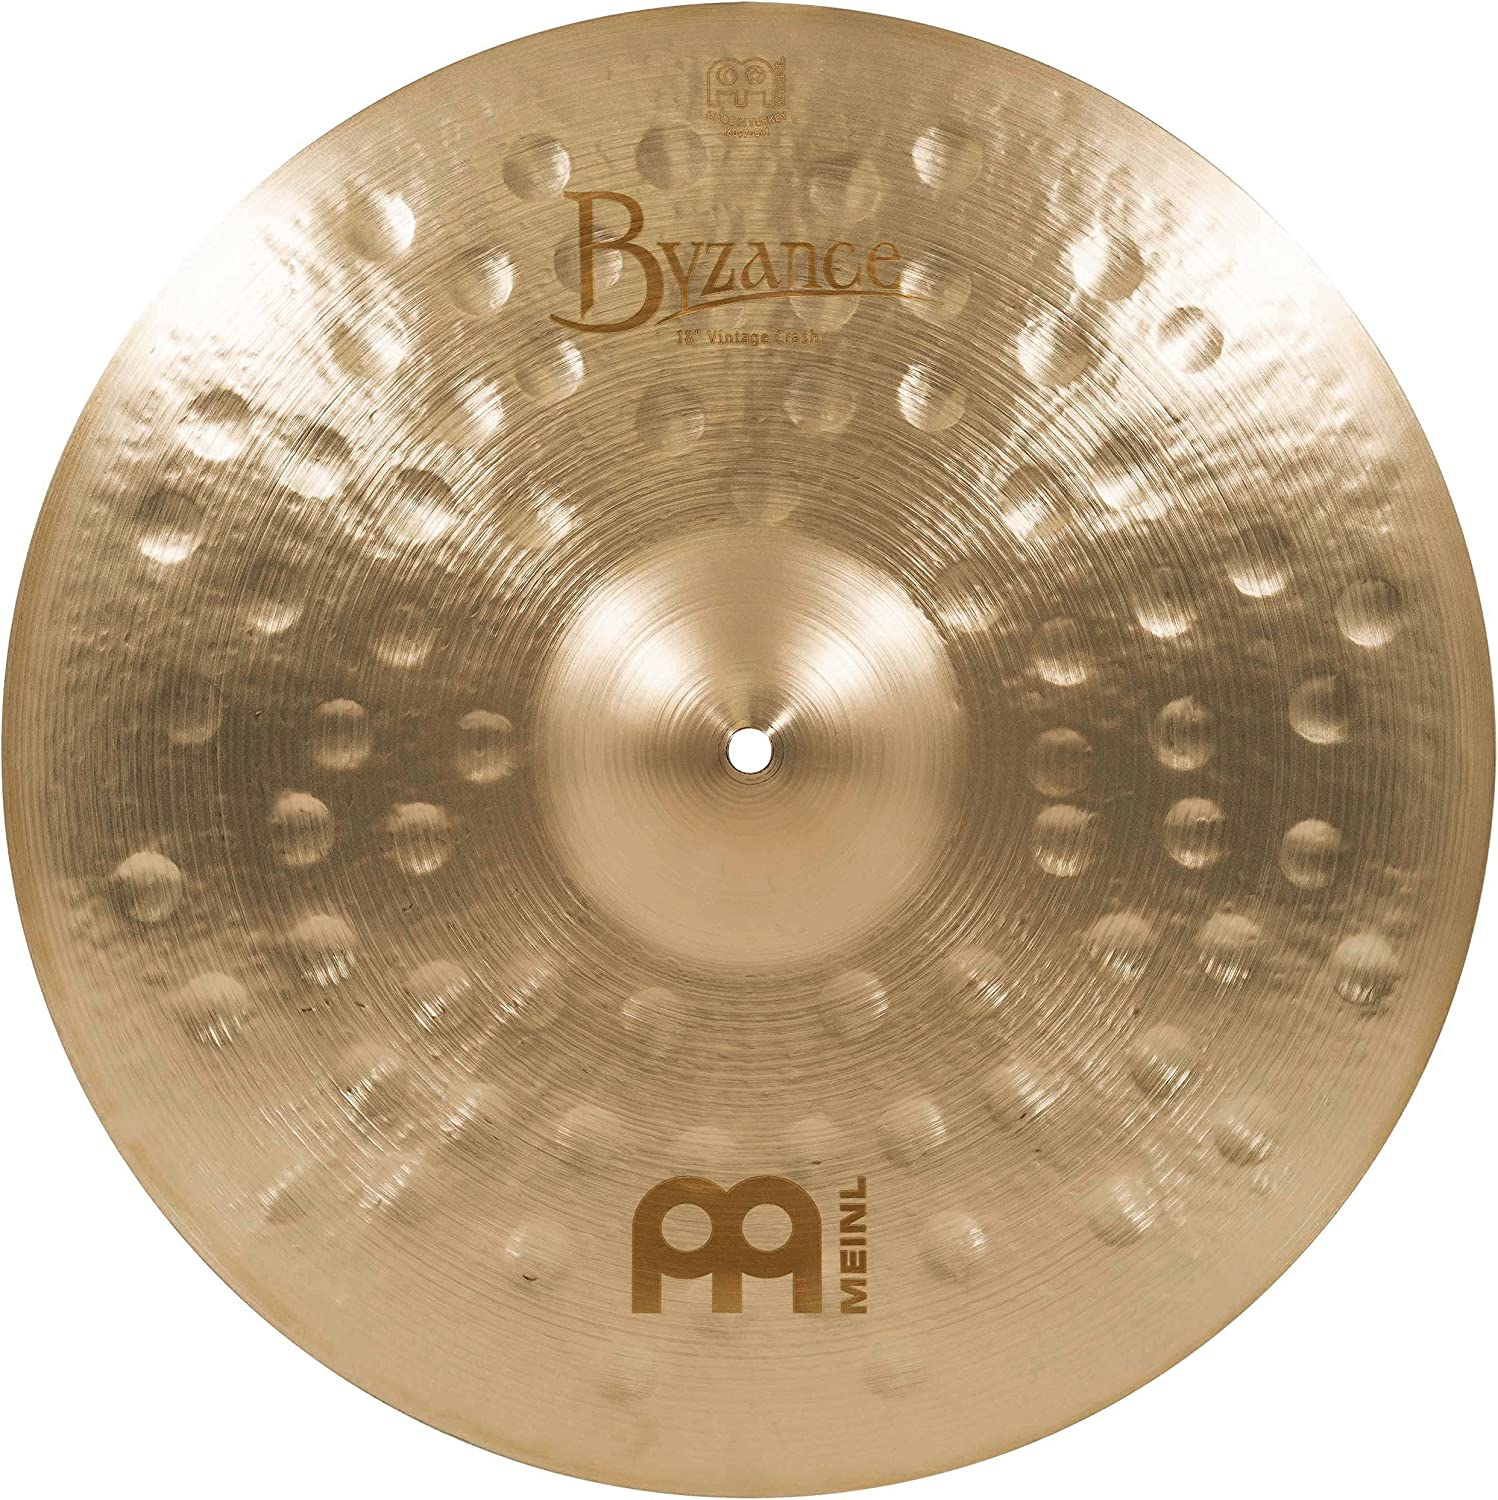 Meinl Cymbals Max 84% OFF B18VC Byzance Ranking TOP12 18-Inch Crash Vintage VIDEO Cymbal